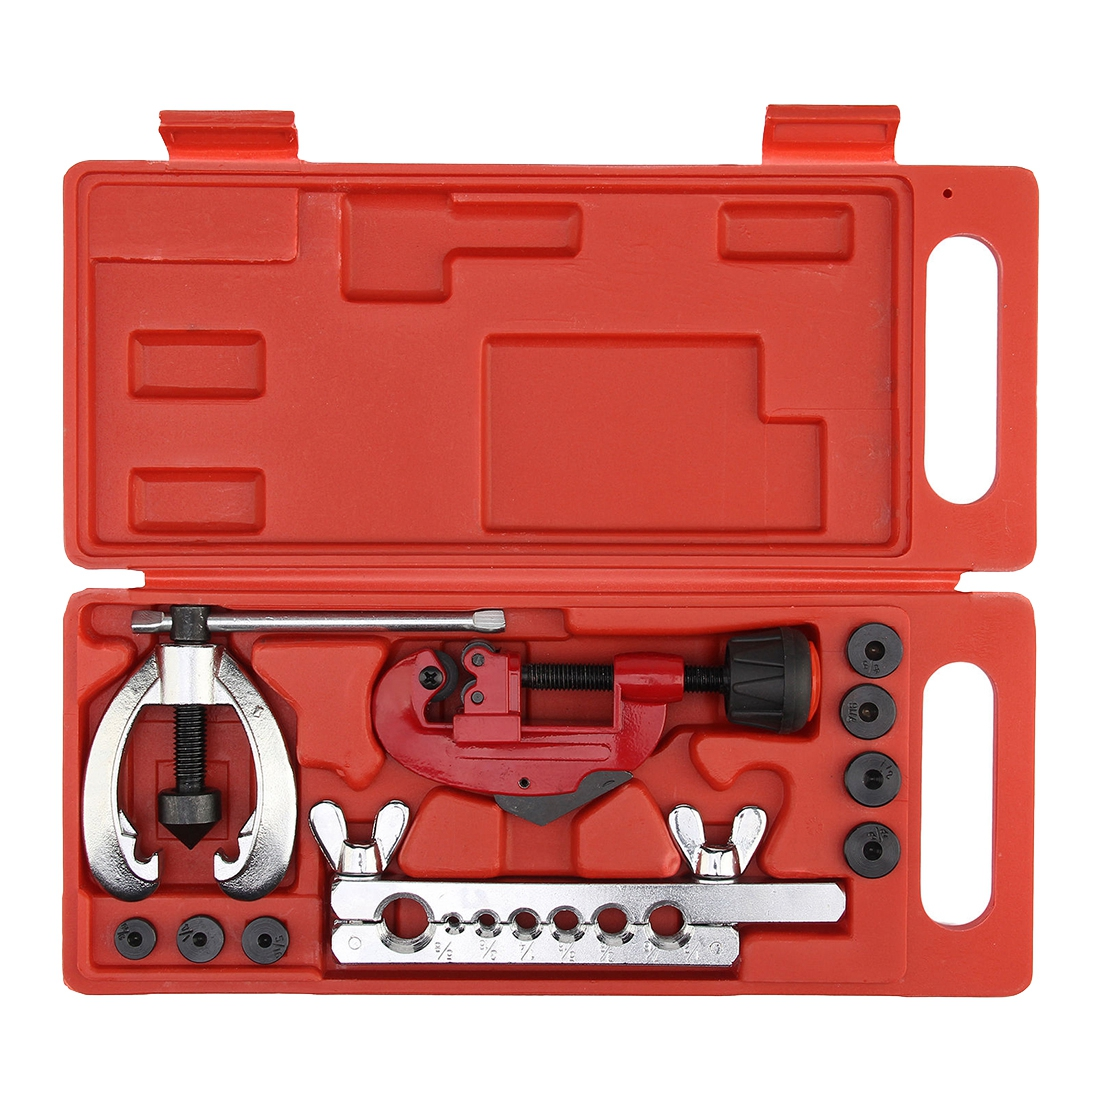 Copper Brake Fuel Pipe Repair Double Flaring Dies Tool Set Clamp Kit Tube CutterCopper Brake Fuel Pipe Repair Double Flaring Dies Tool Set Clamp Kit Tube Cutter